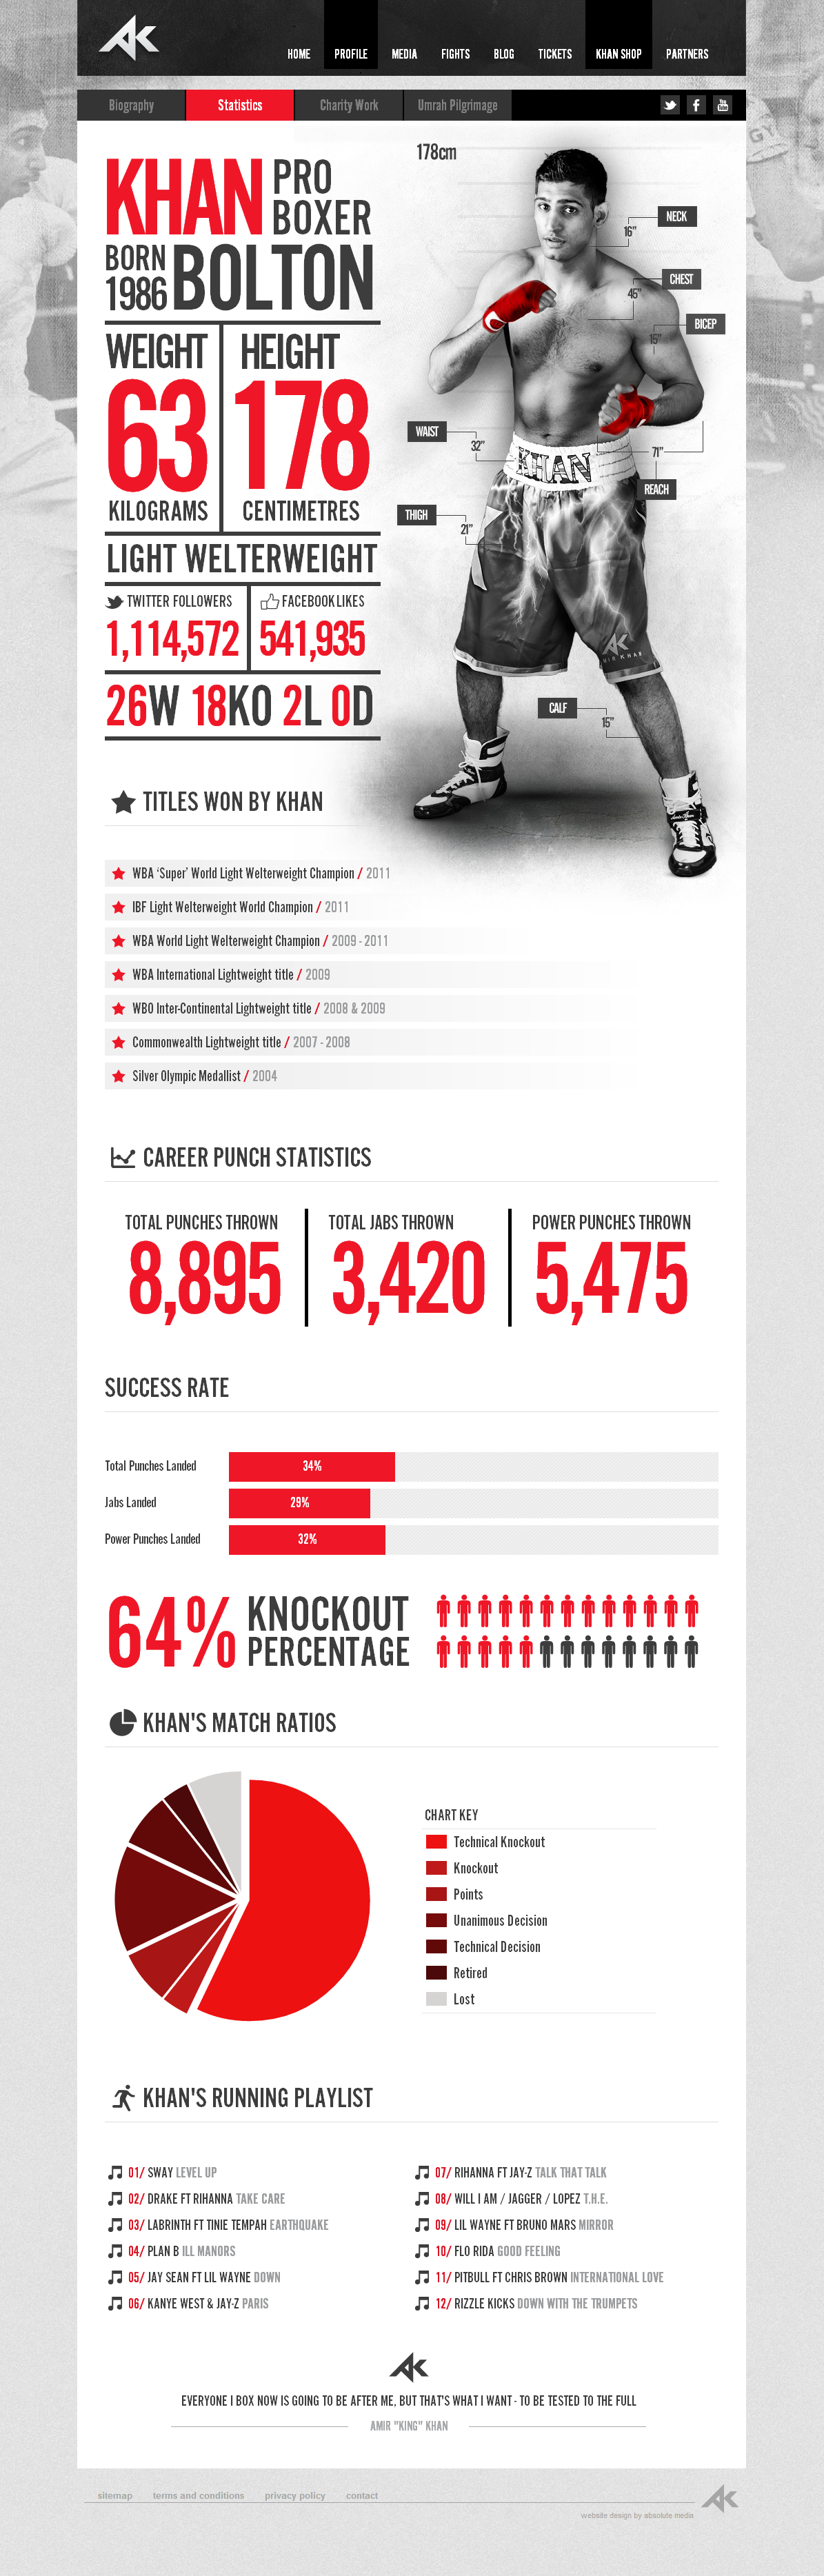 If you repurpose this as your resume with your skills/stats ...